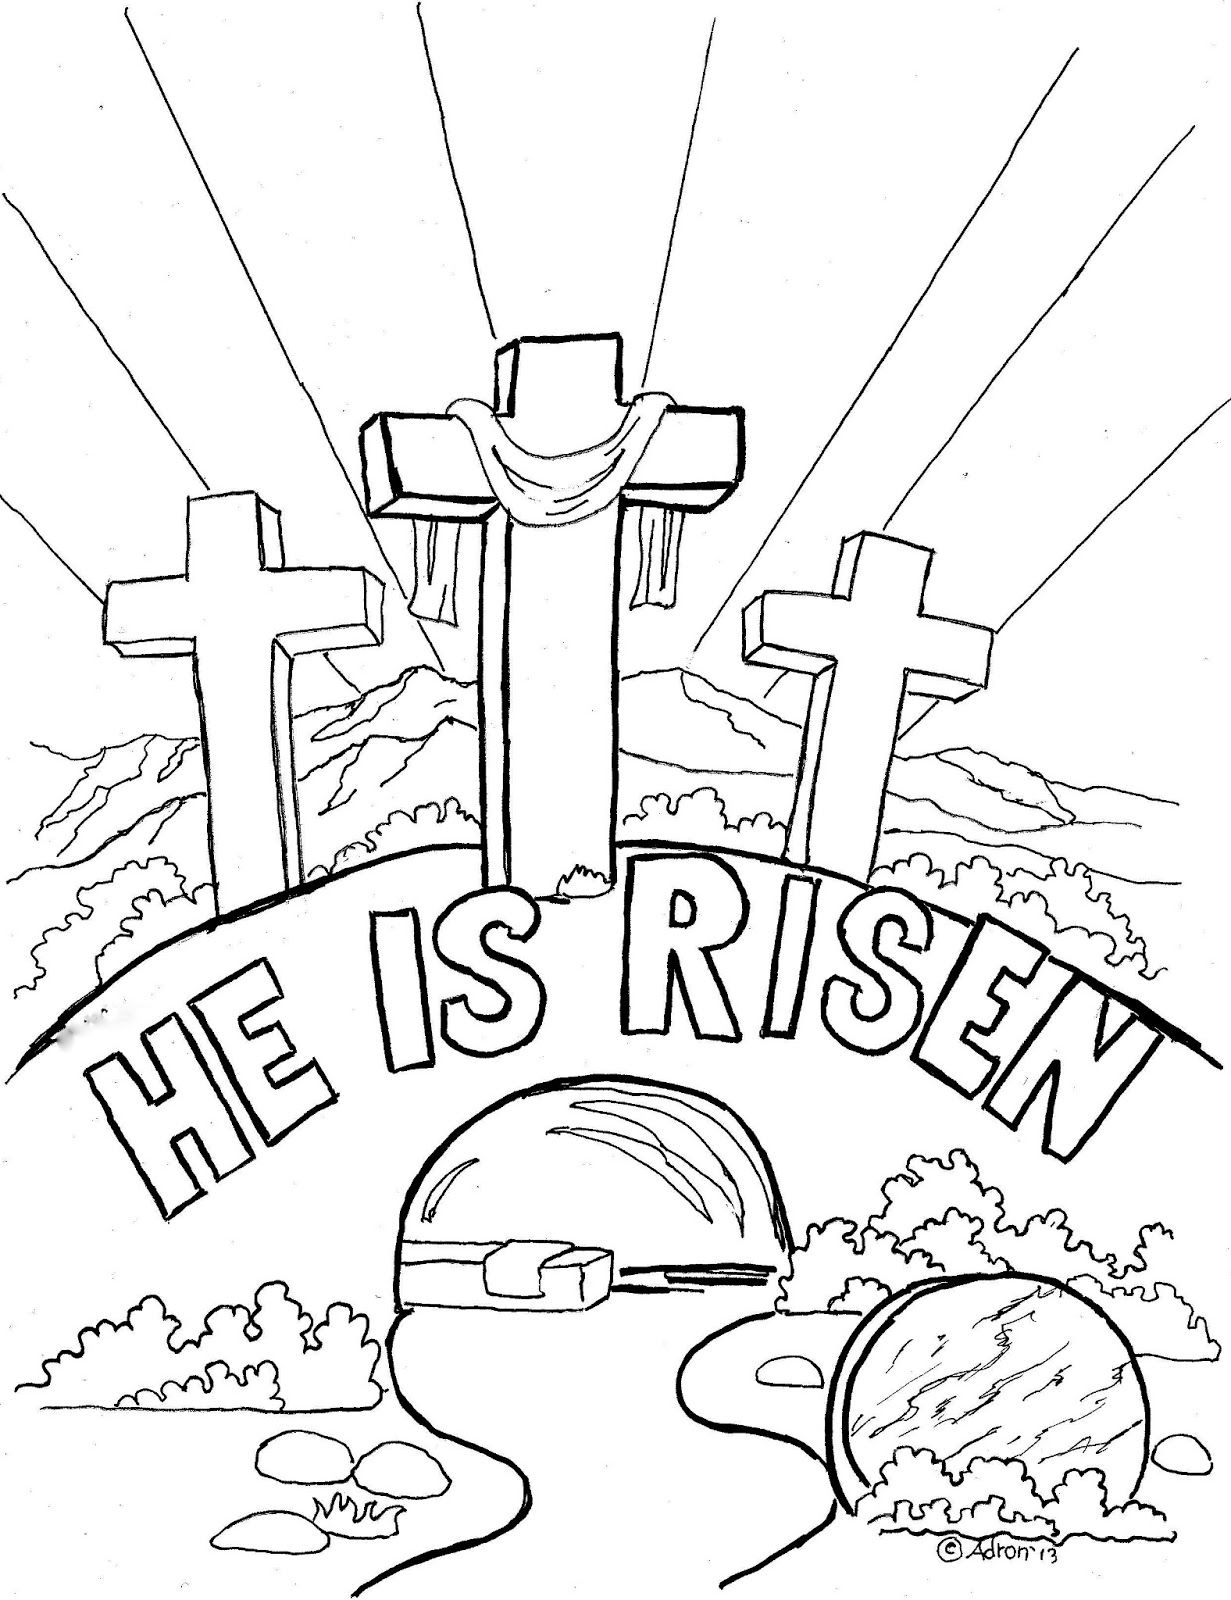 Printable coloring pages religious items - Coloring Pages For Kids By Mr Adron Easter Coloring Page For Kids